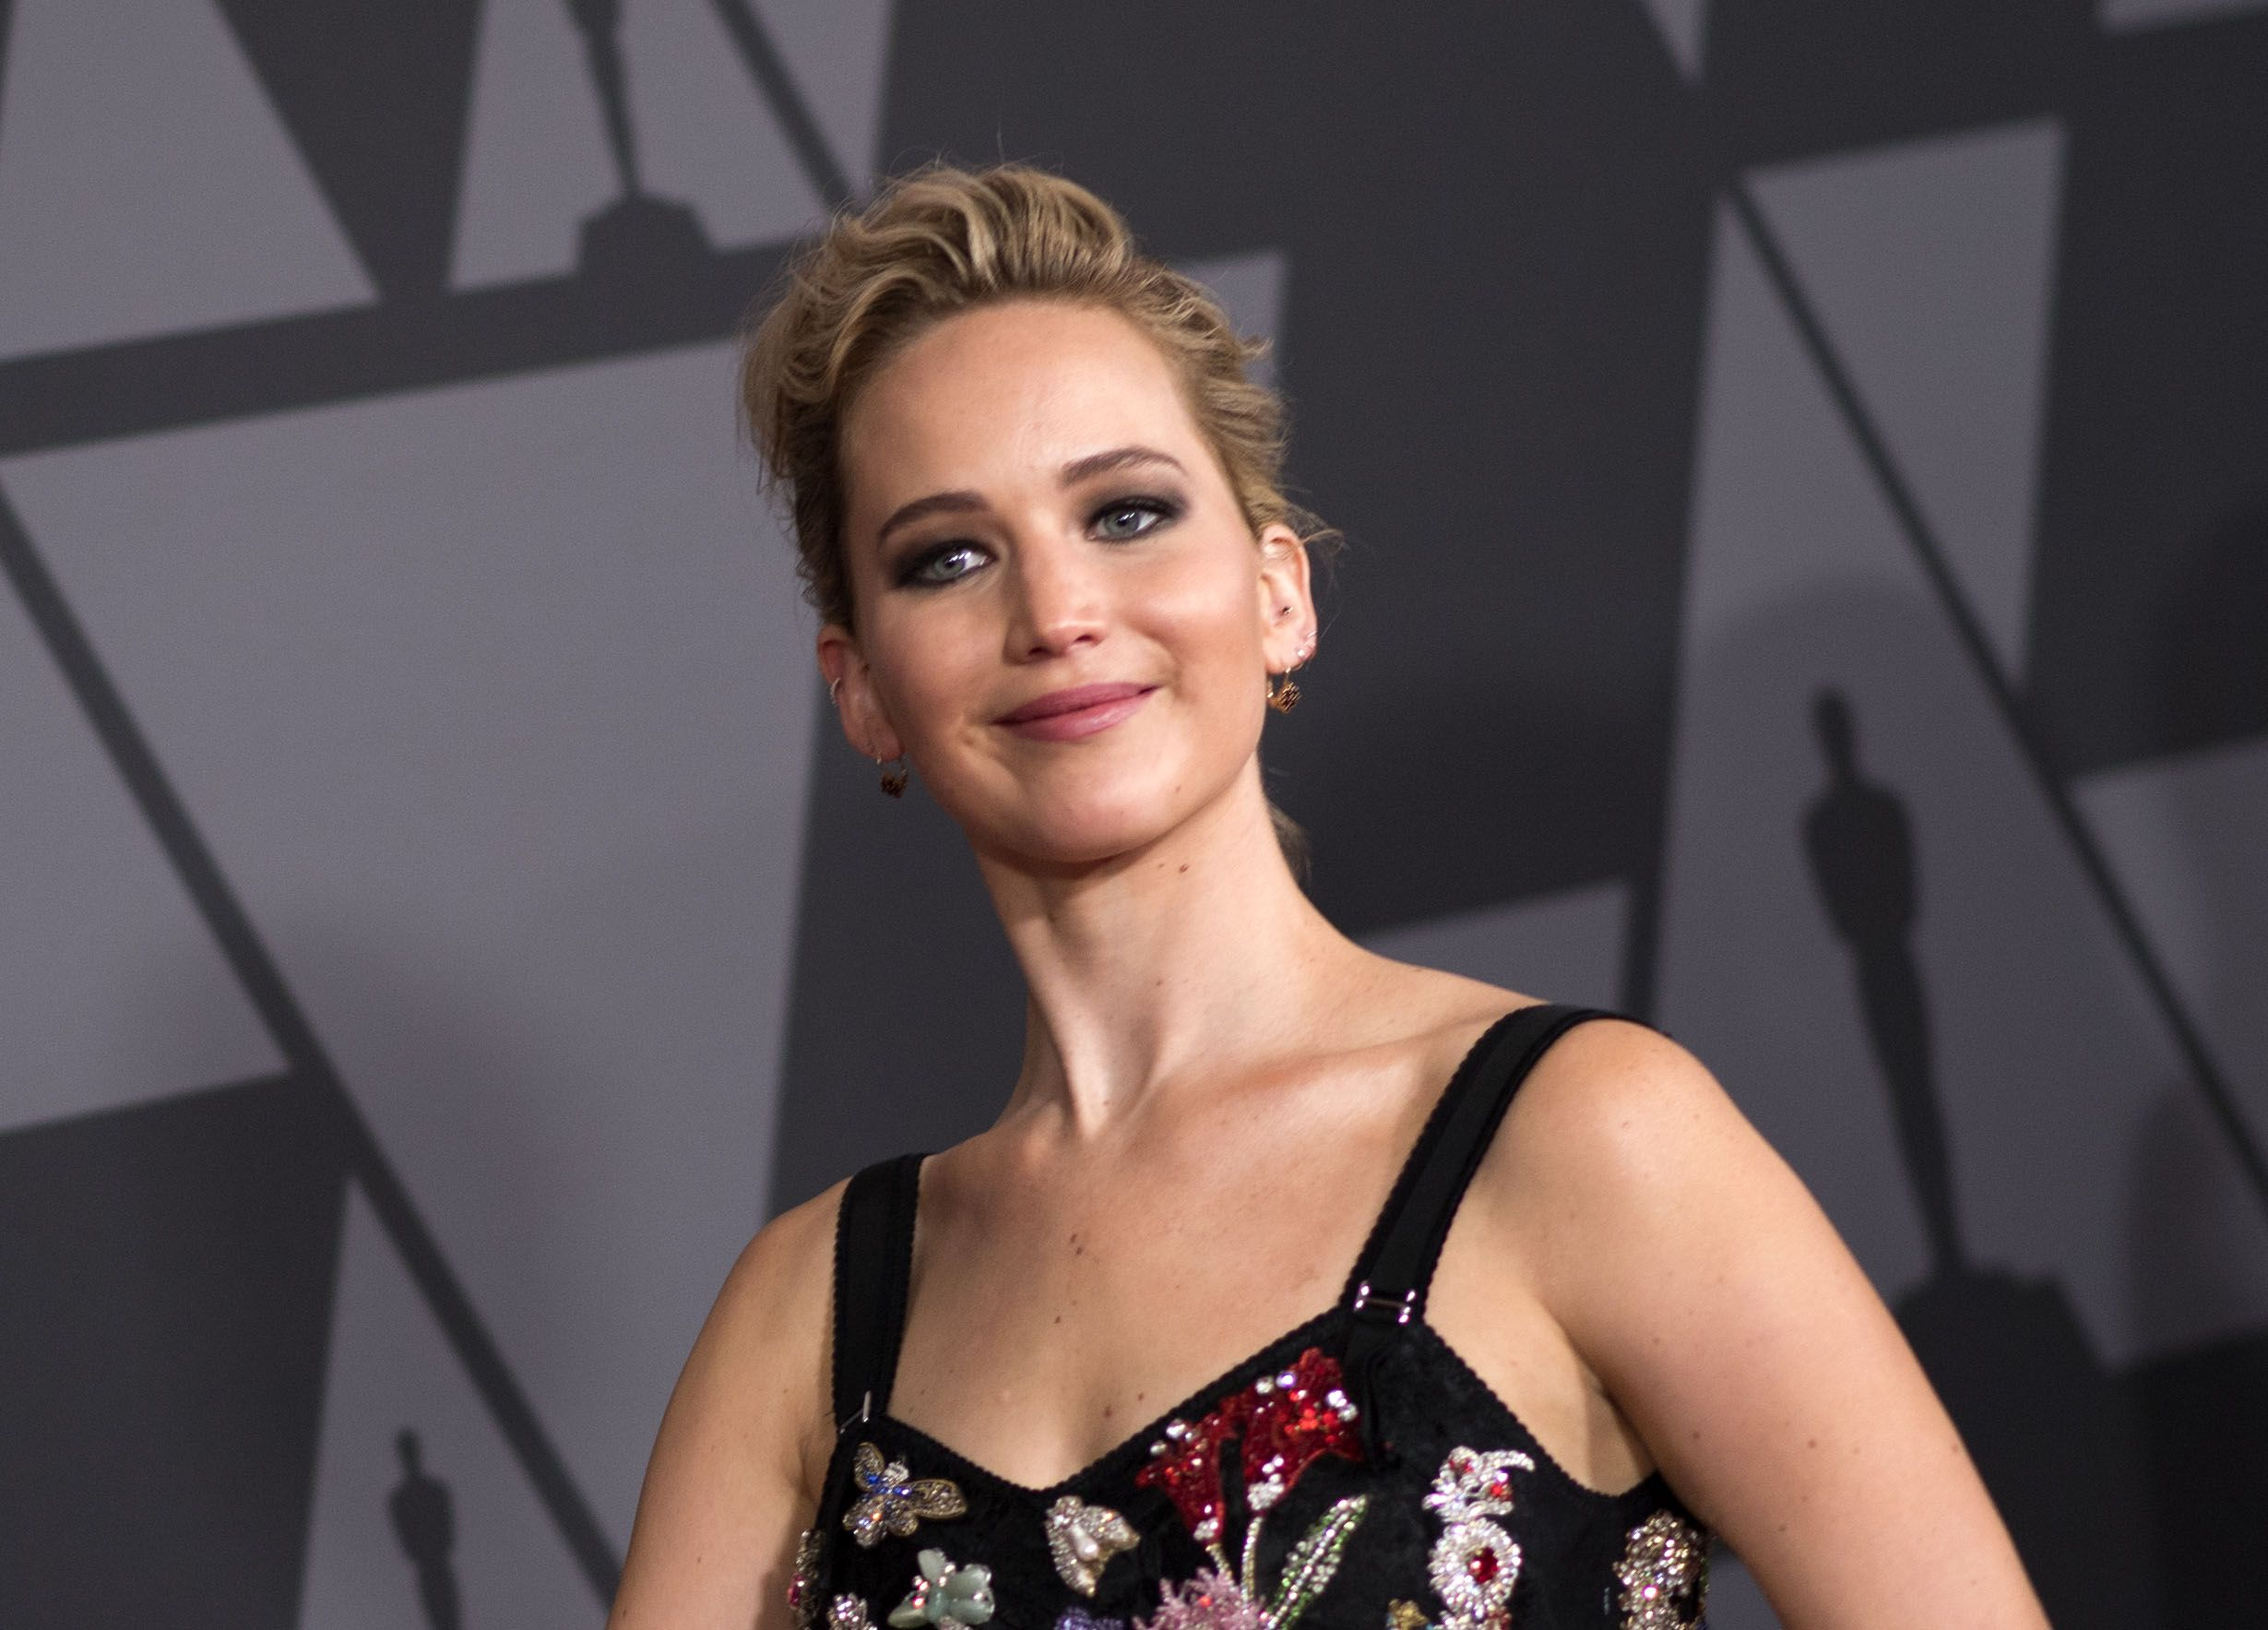 Jennifer Lawrence is an 'asshole', according to Jennifer Lawrence